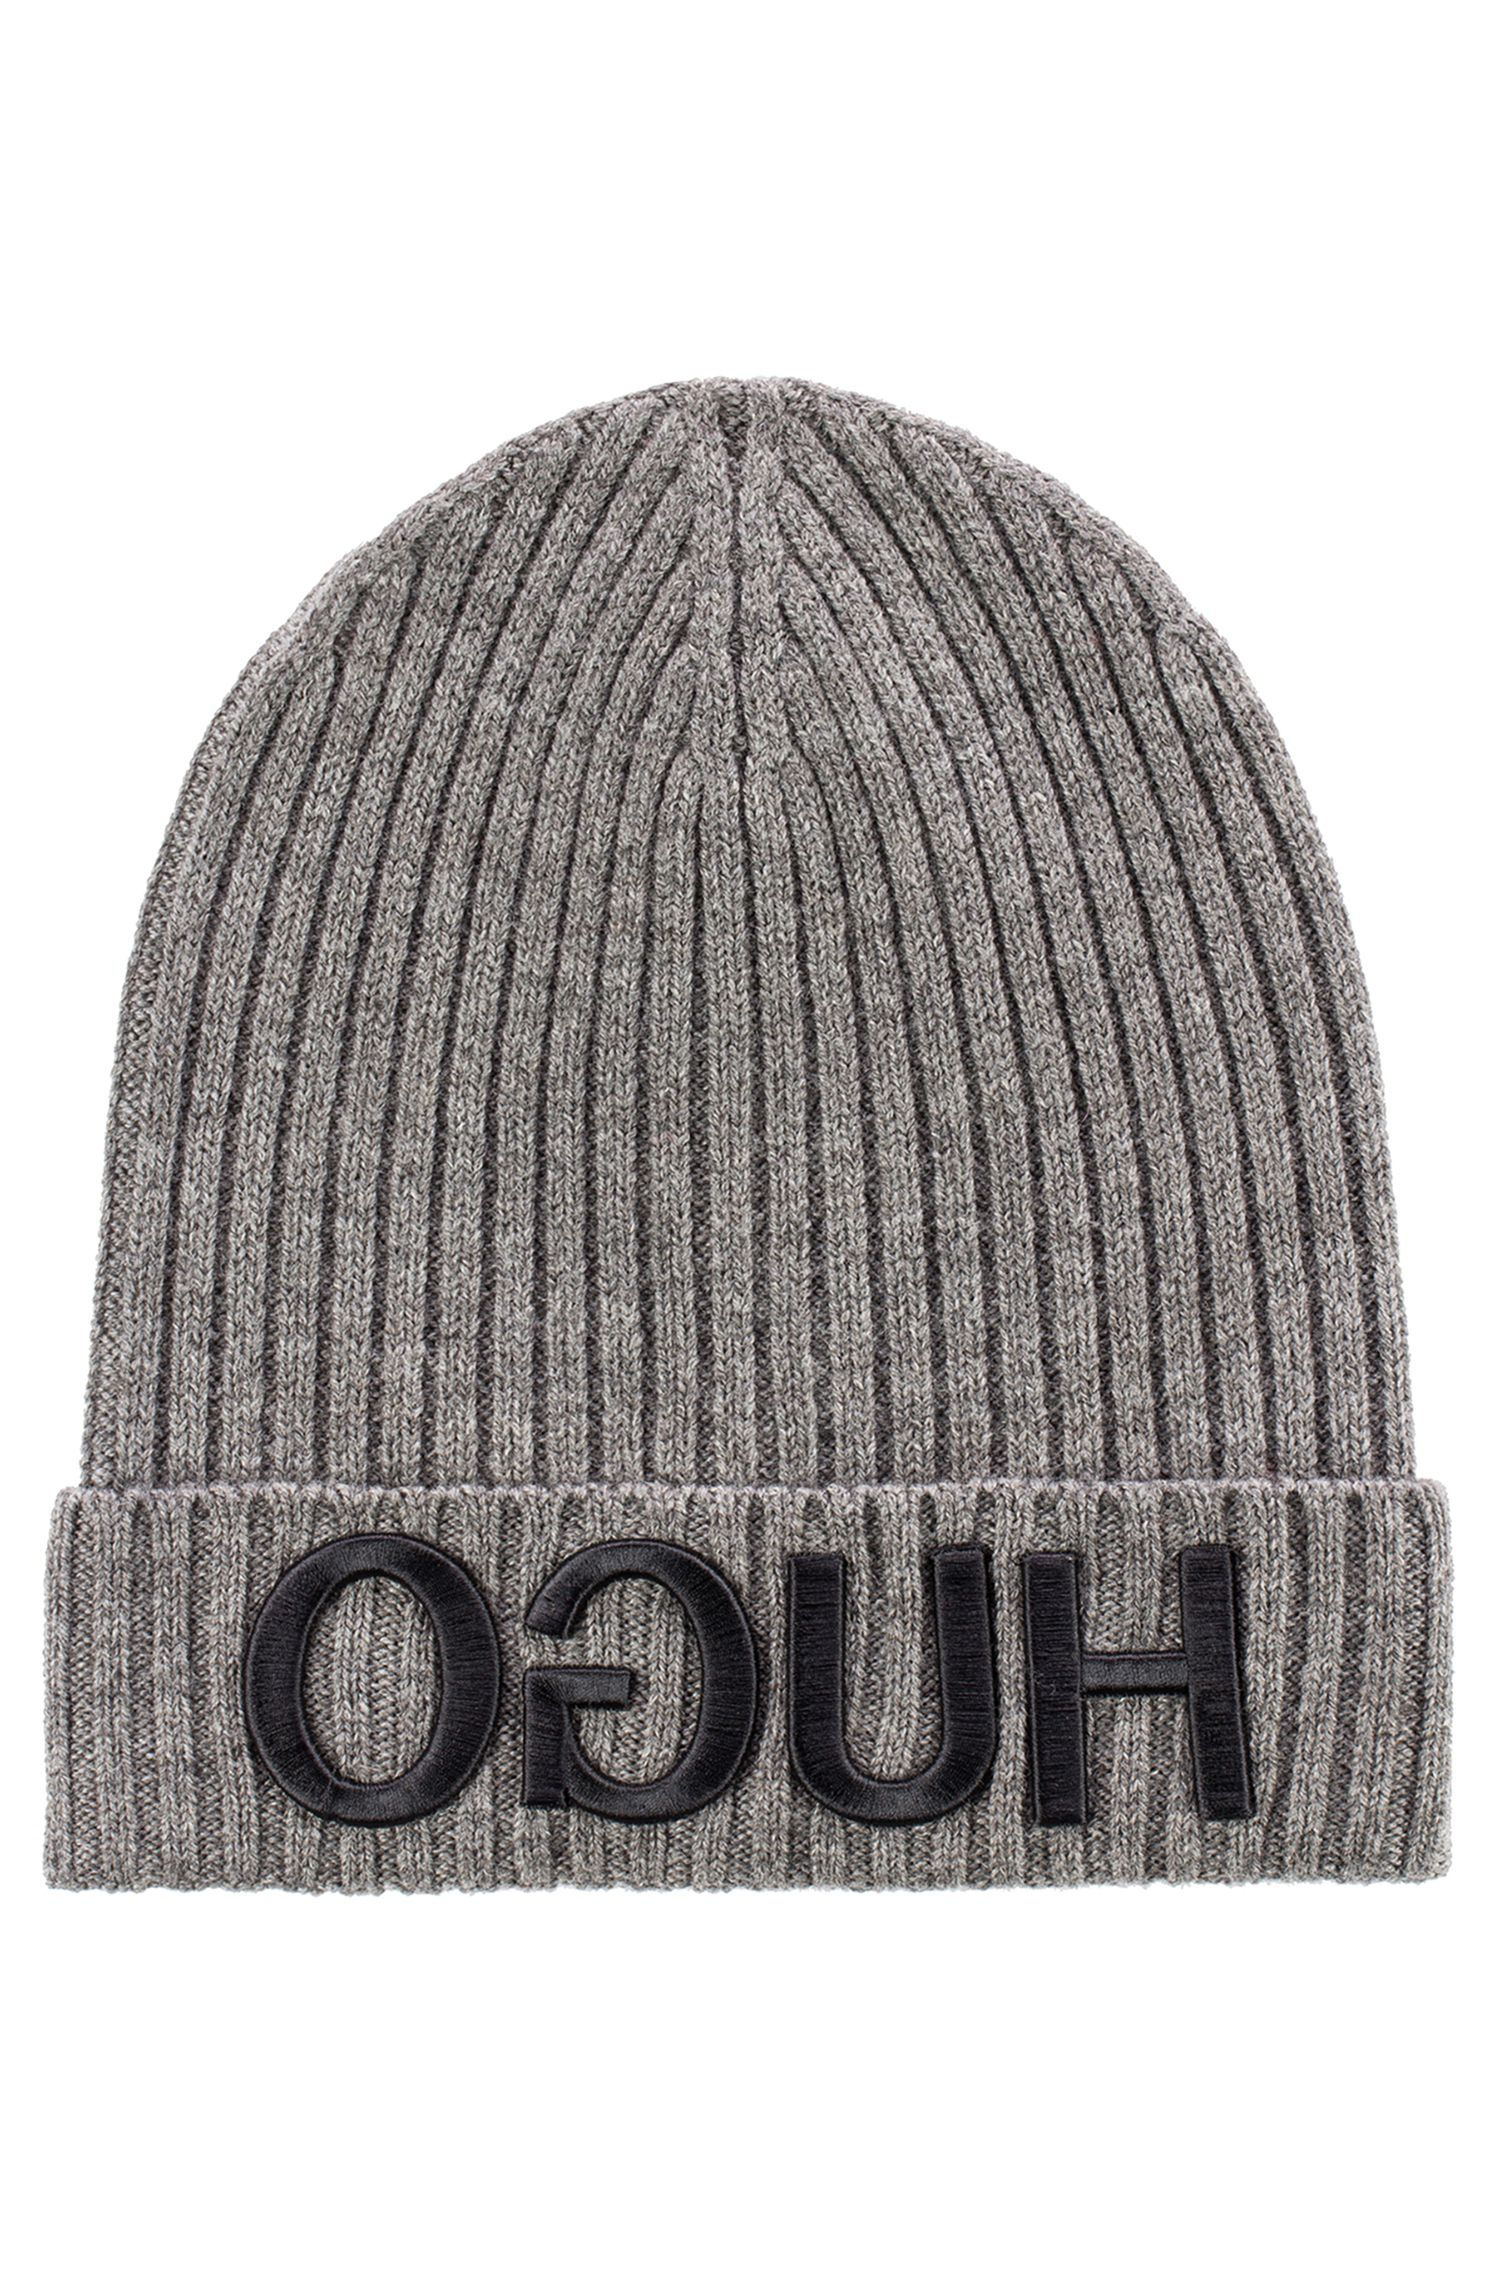 Unisex beanie hat in wool with reverse logo, Grey